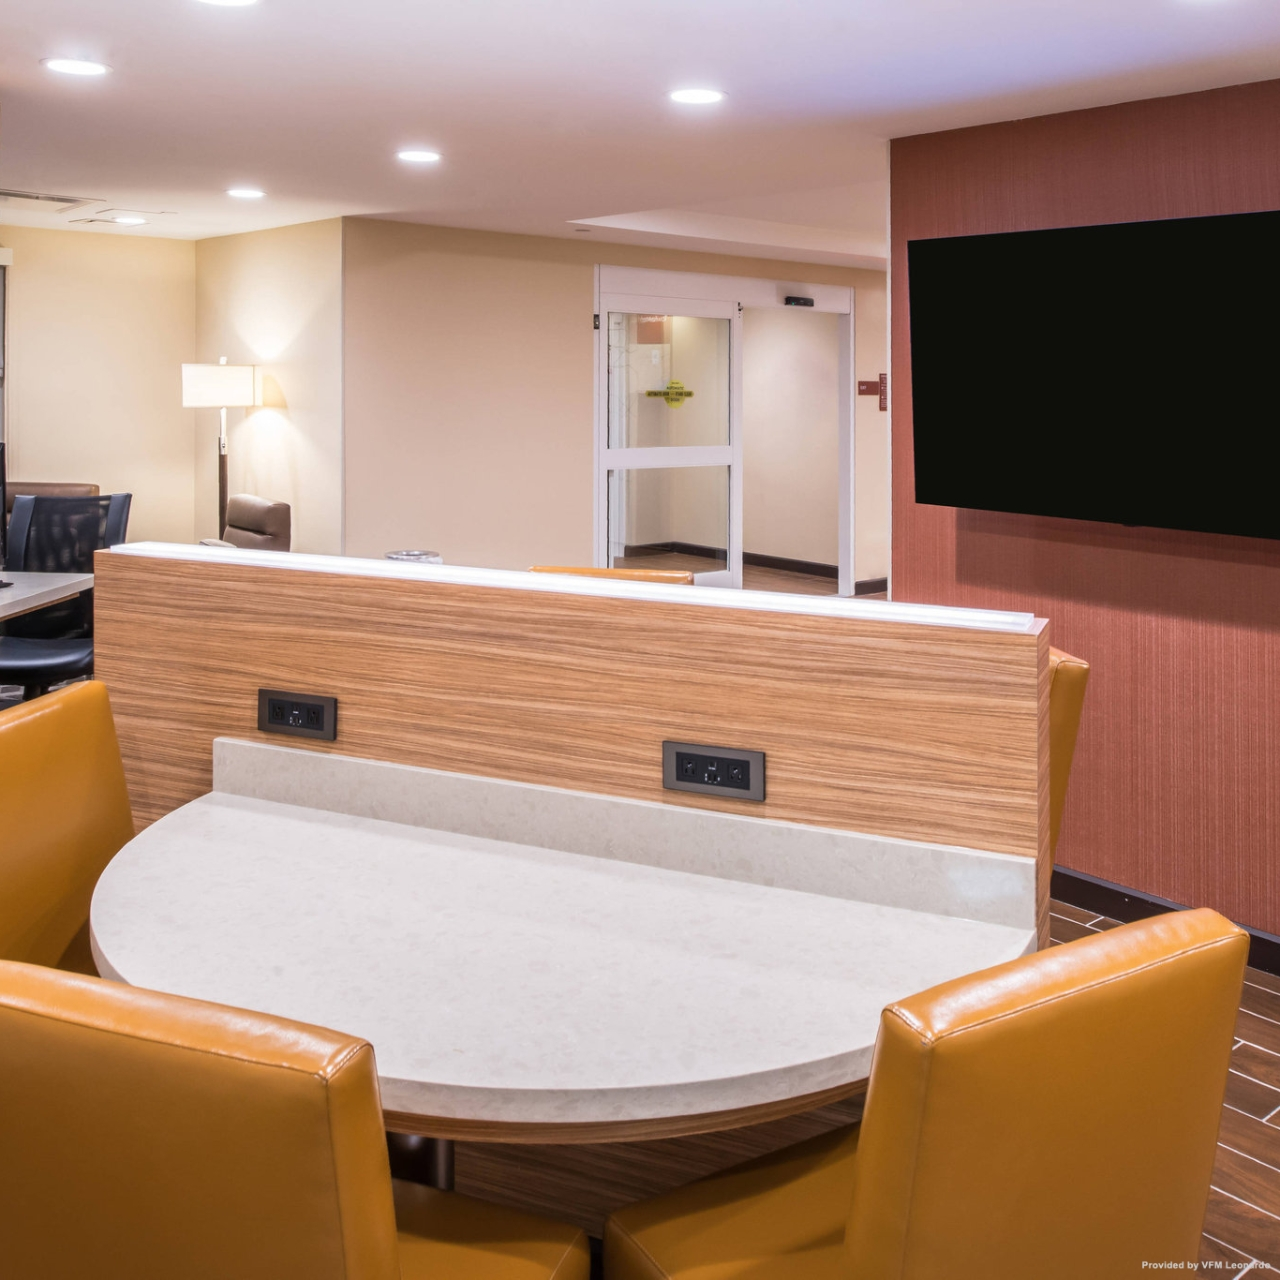 Hotel Towneplace Suites Ontario Chino Hills United States Of America At Hrs With Free Services